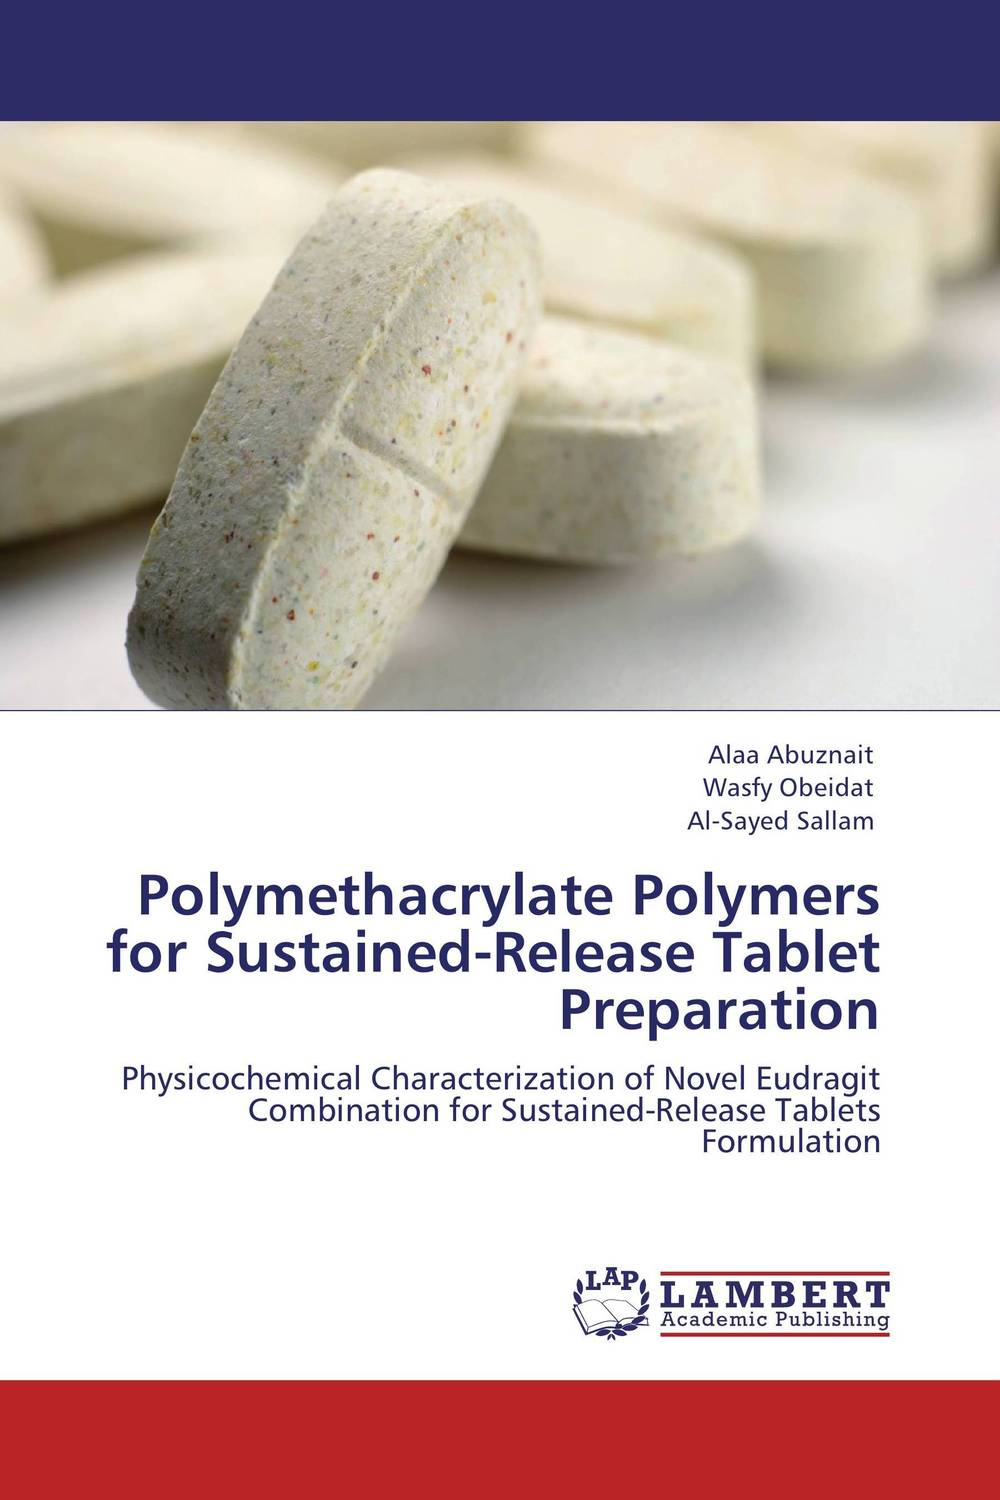 Polymethacrylate Polymers for Sustained-Release Tablet Preparation 2014 bigbang a concert in seoul 1 photo book release date 2014 07 02 kpop